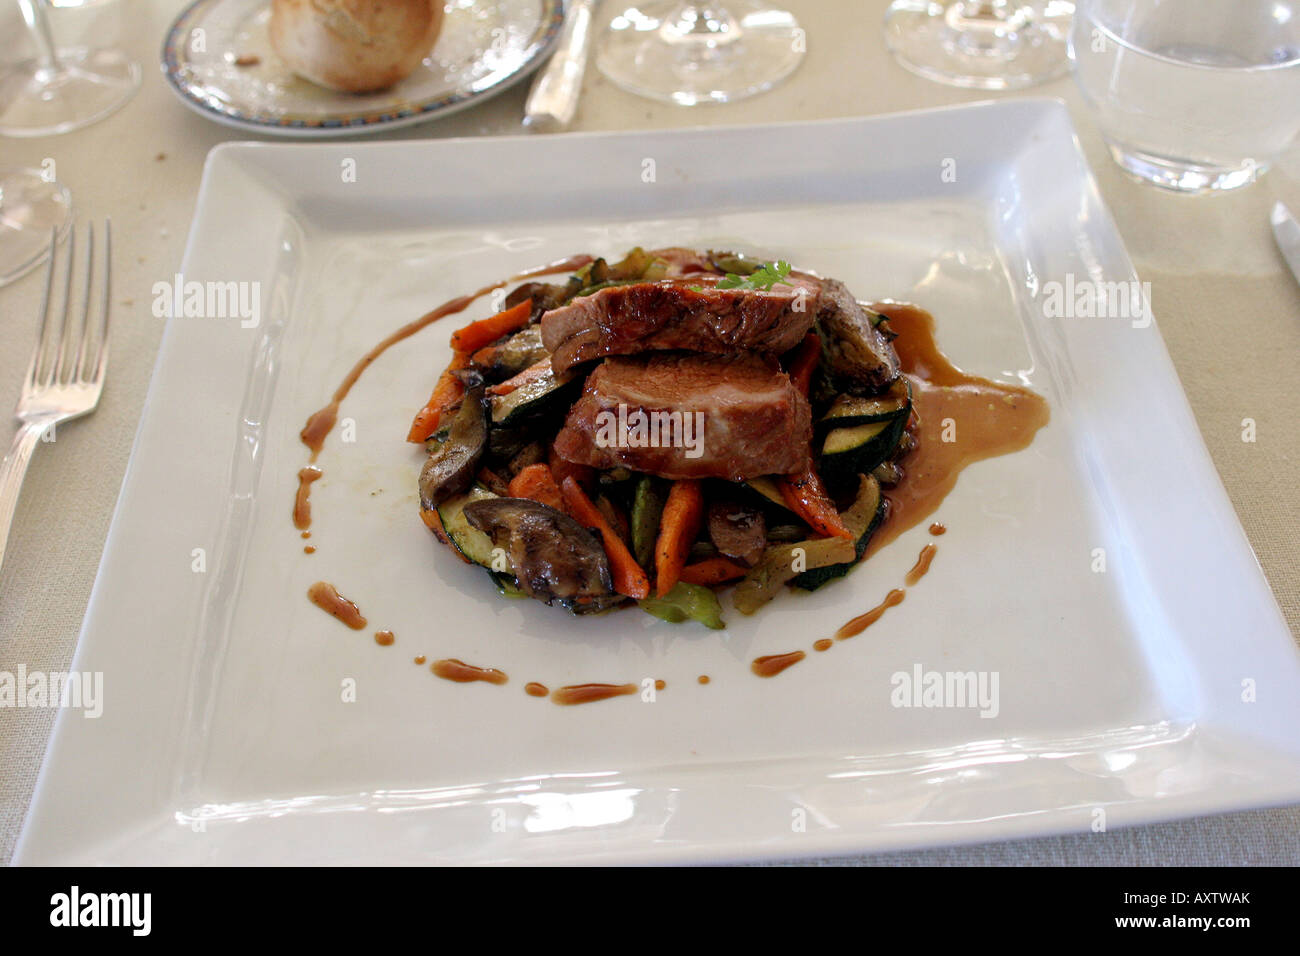 Presentation Of A Meat Dinner On White Dinner Plate Photo By Tom Stock Photo Alamy